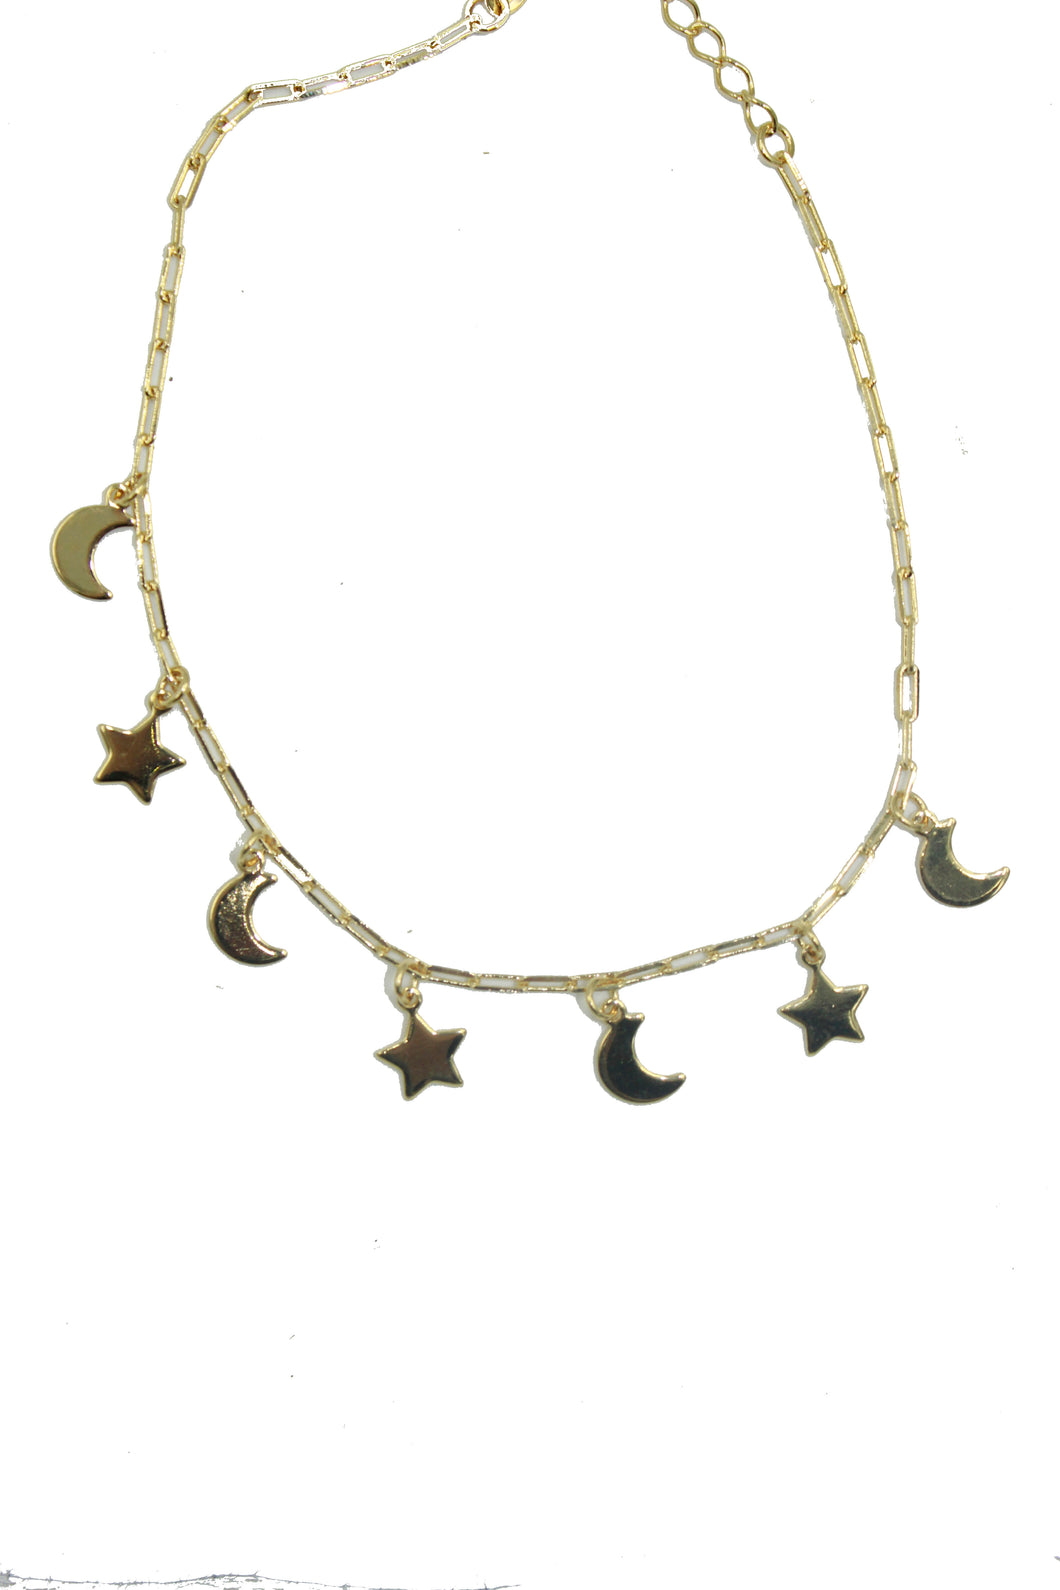 Moon and Star Anklet 18k Gold Plated 10 inch - Enchape De Oro - Star Moon Anklet